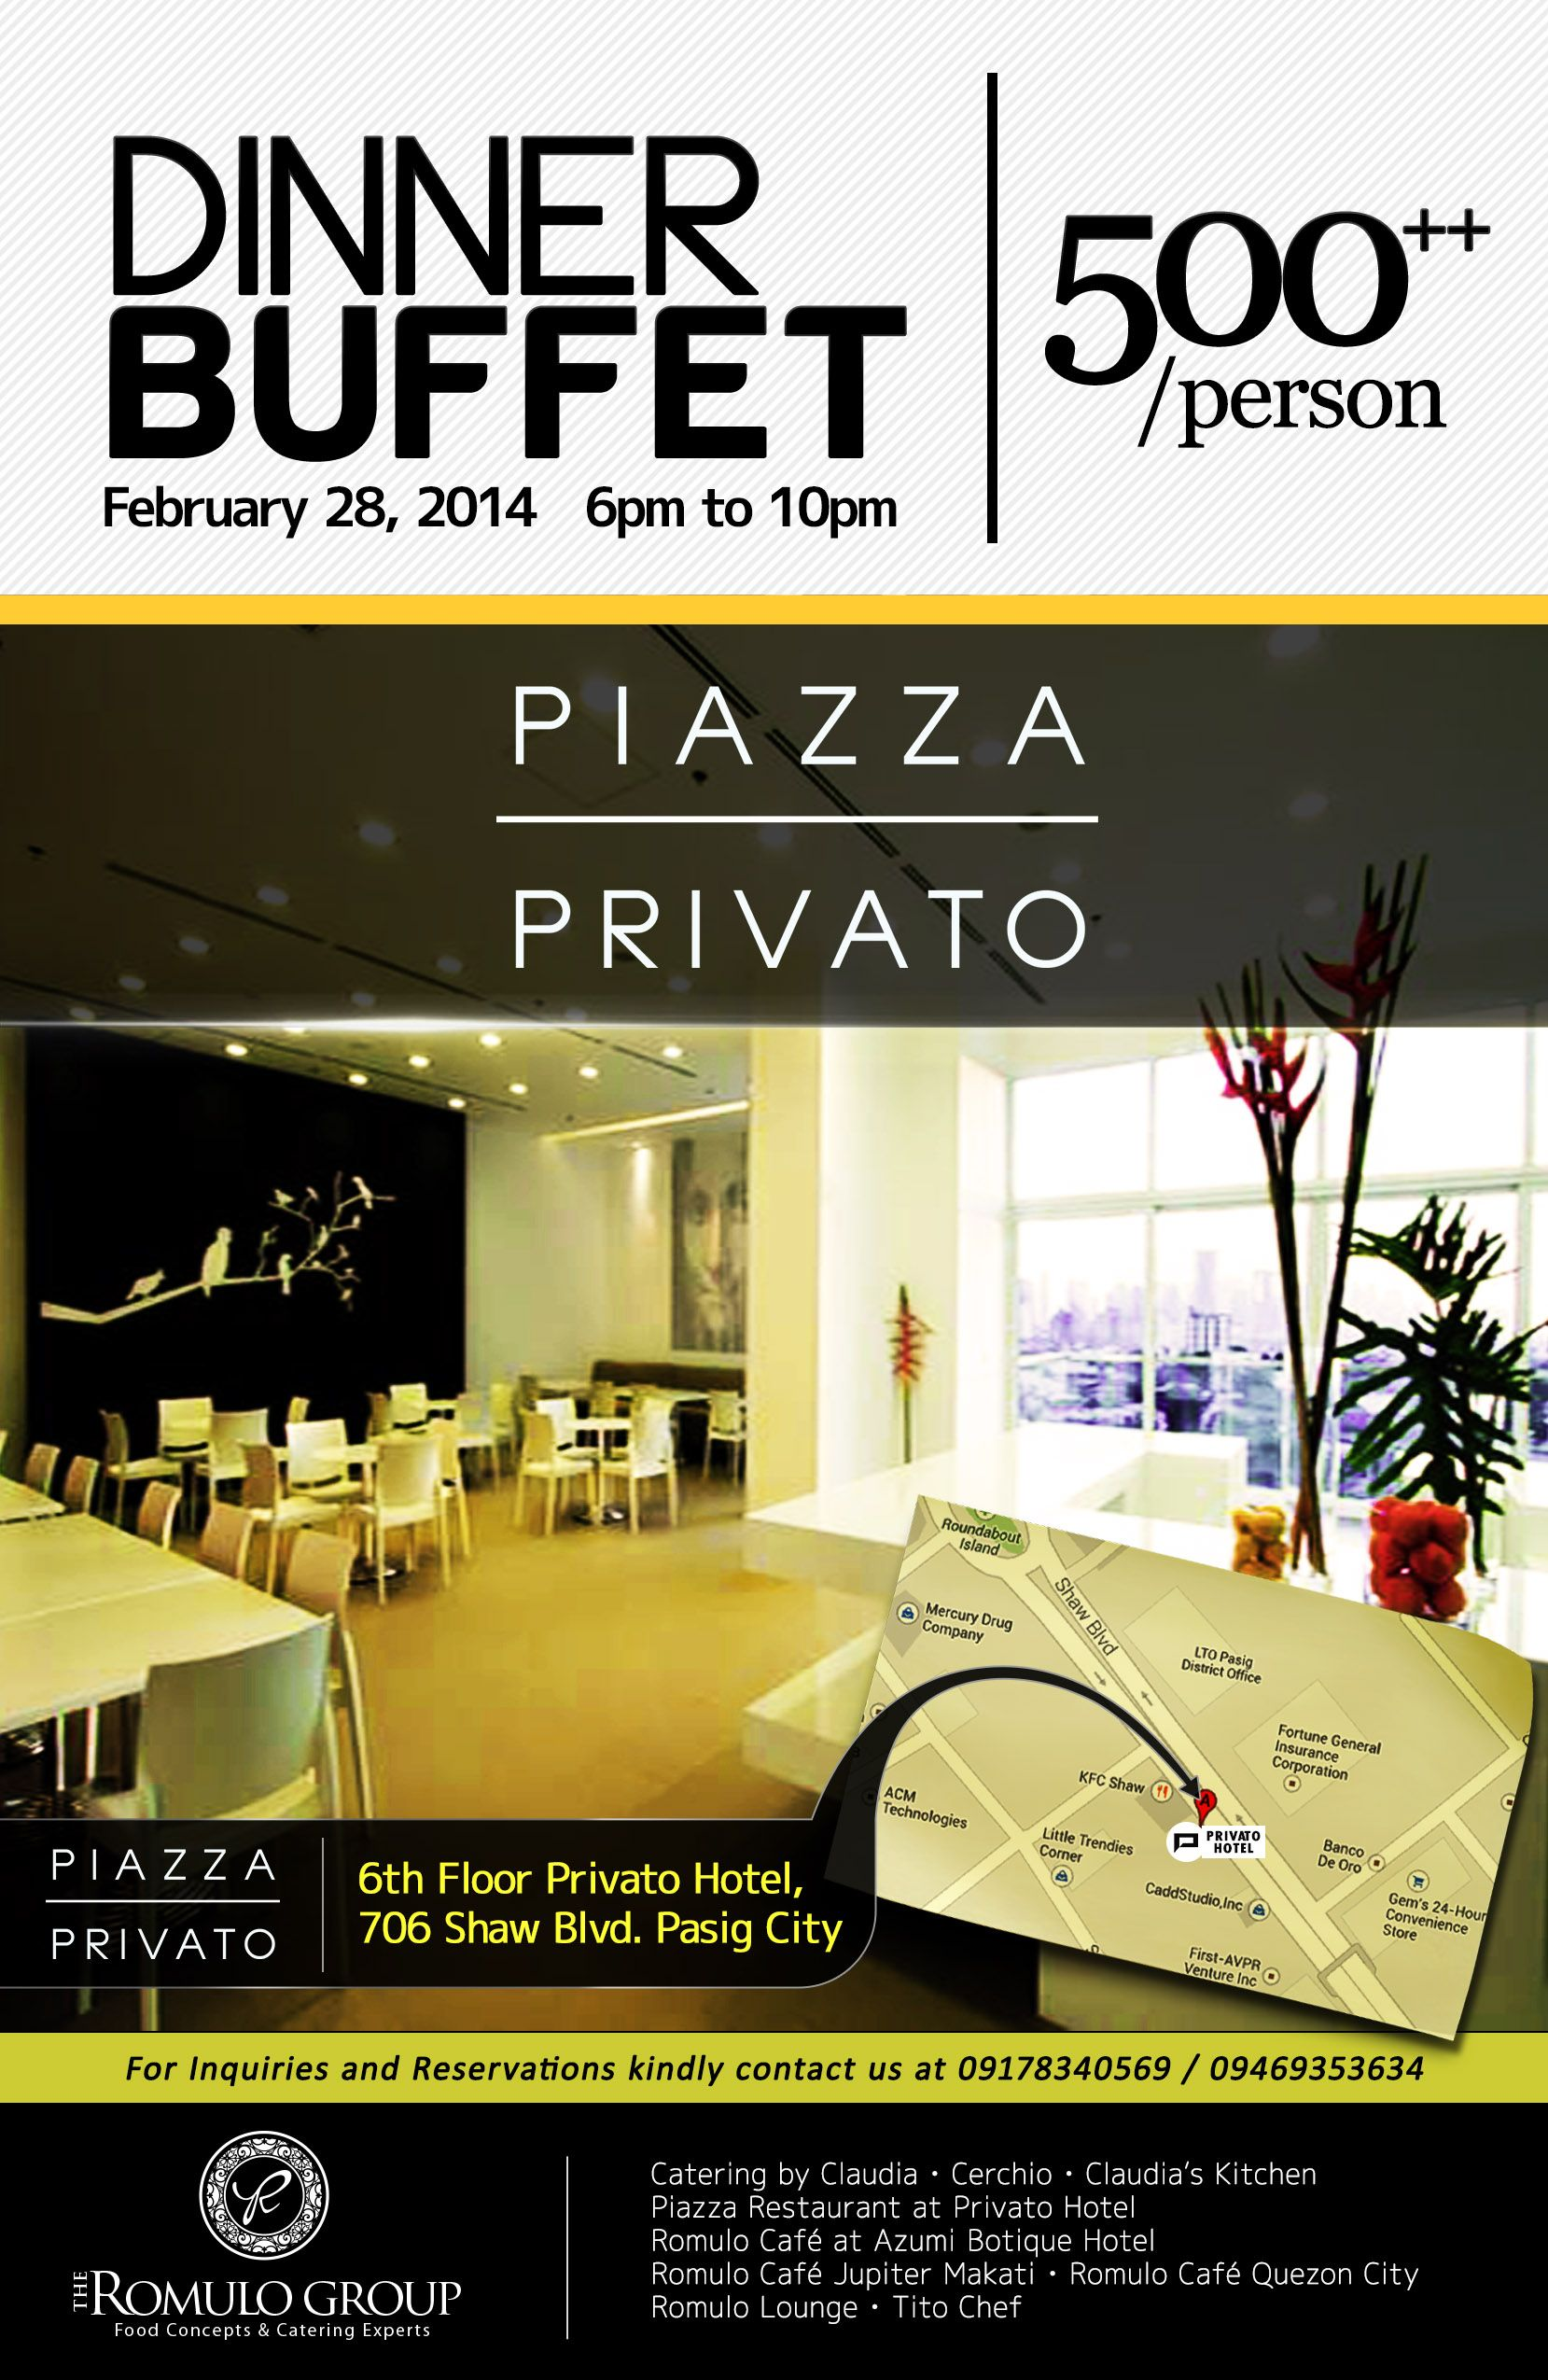 Privato Hotel Acoustic Dinner Buffet Flyer  Romulo Group Company